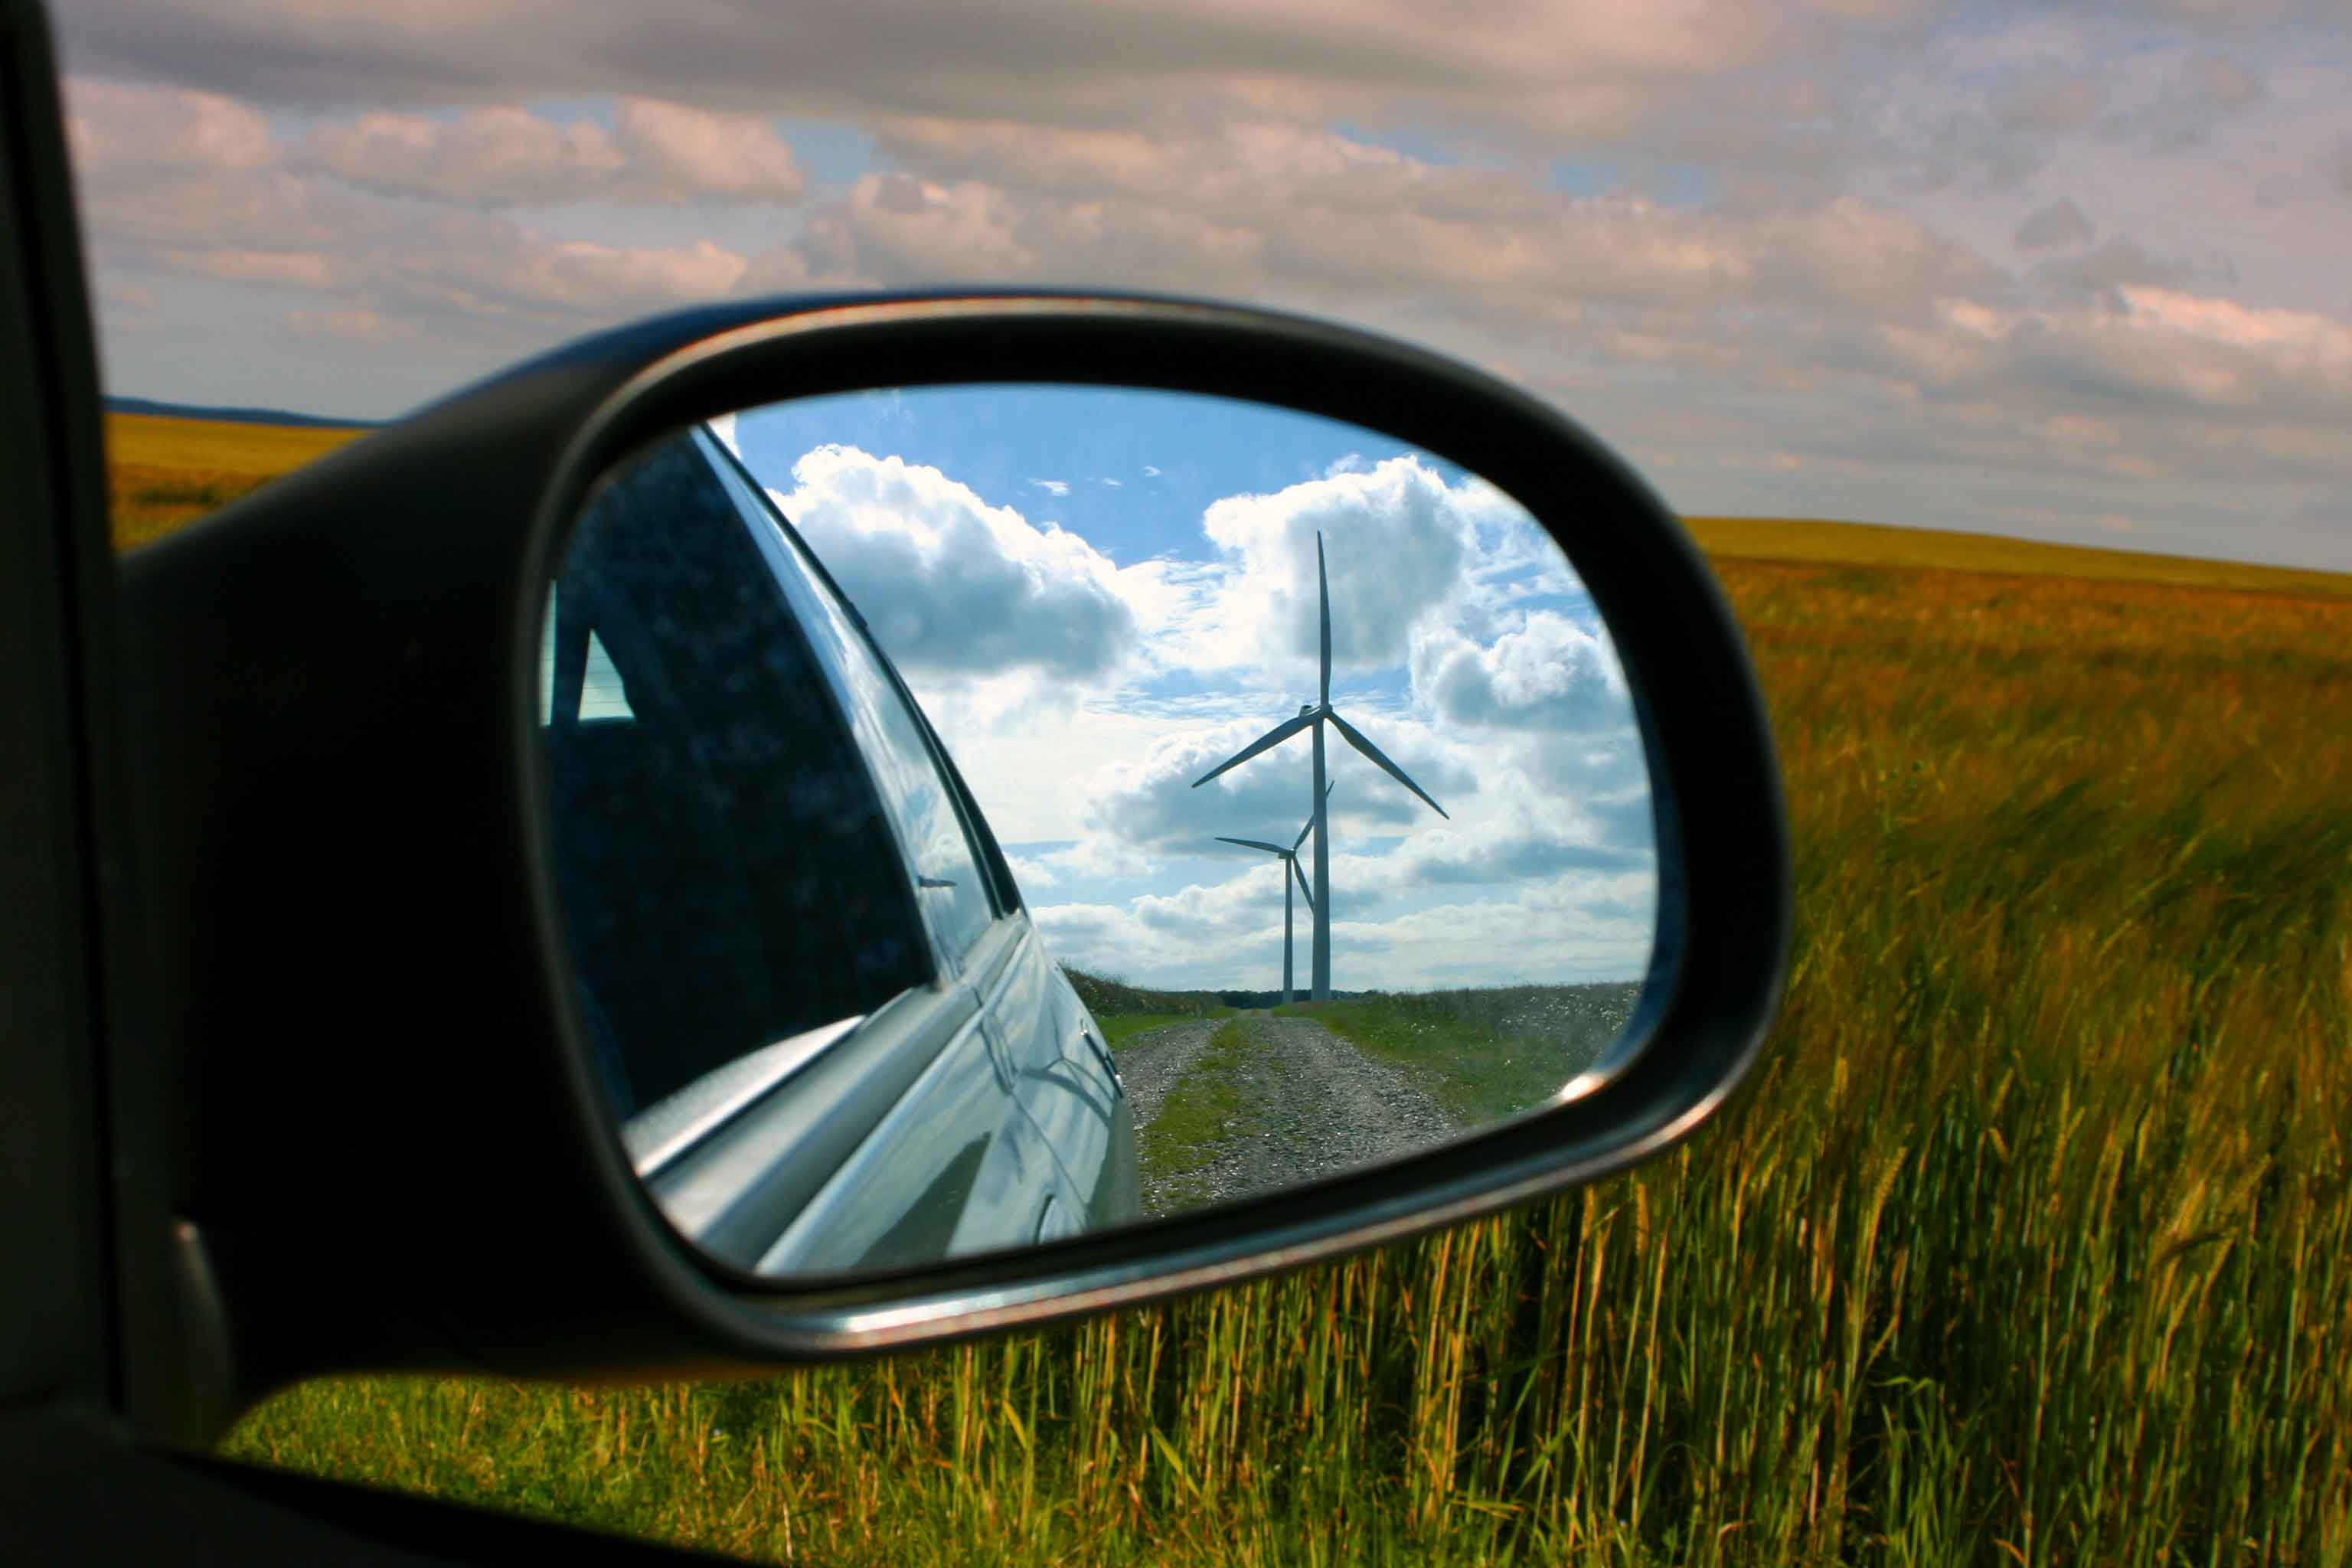 Side mirror of a car with a reflection of wind turbines